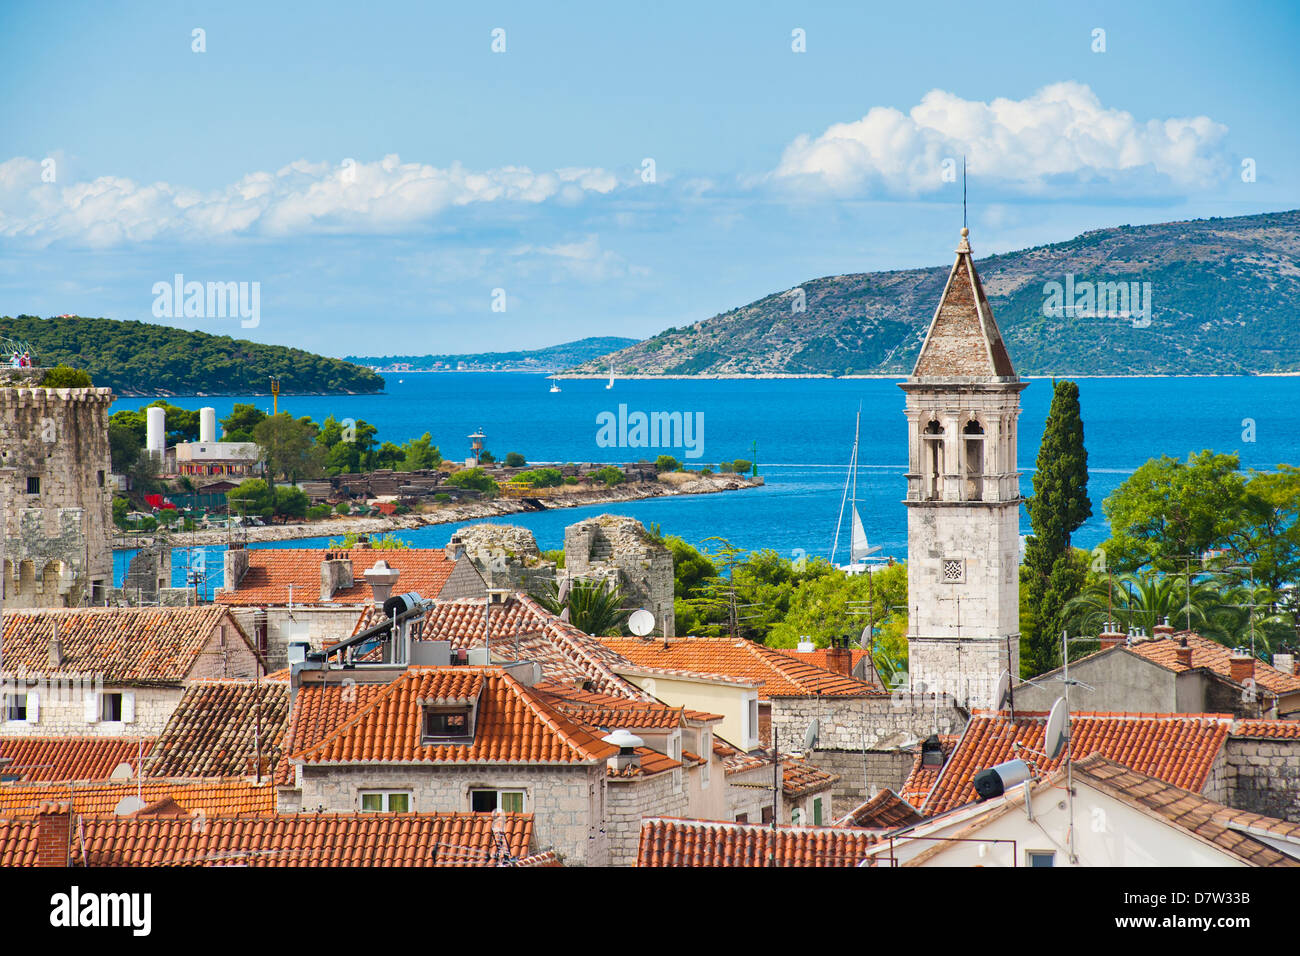 Spire of St. Michael Monastery and Church Belfry, Trogir, UNESCO World Heritage Site, Dalmatian Coast, Adriatic, - Stock Image